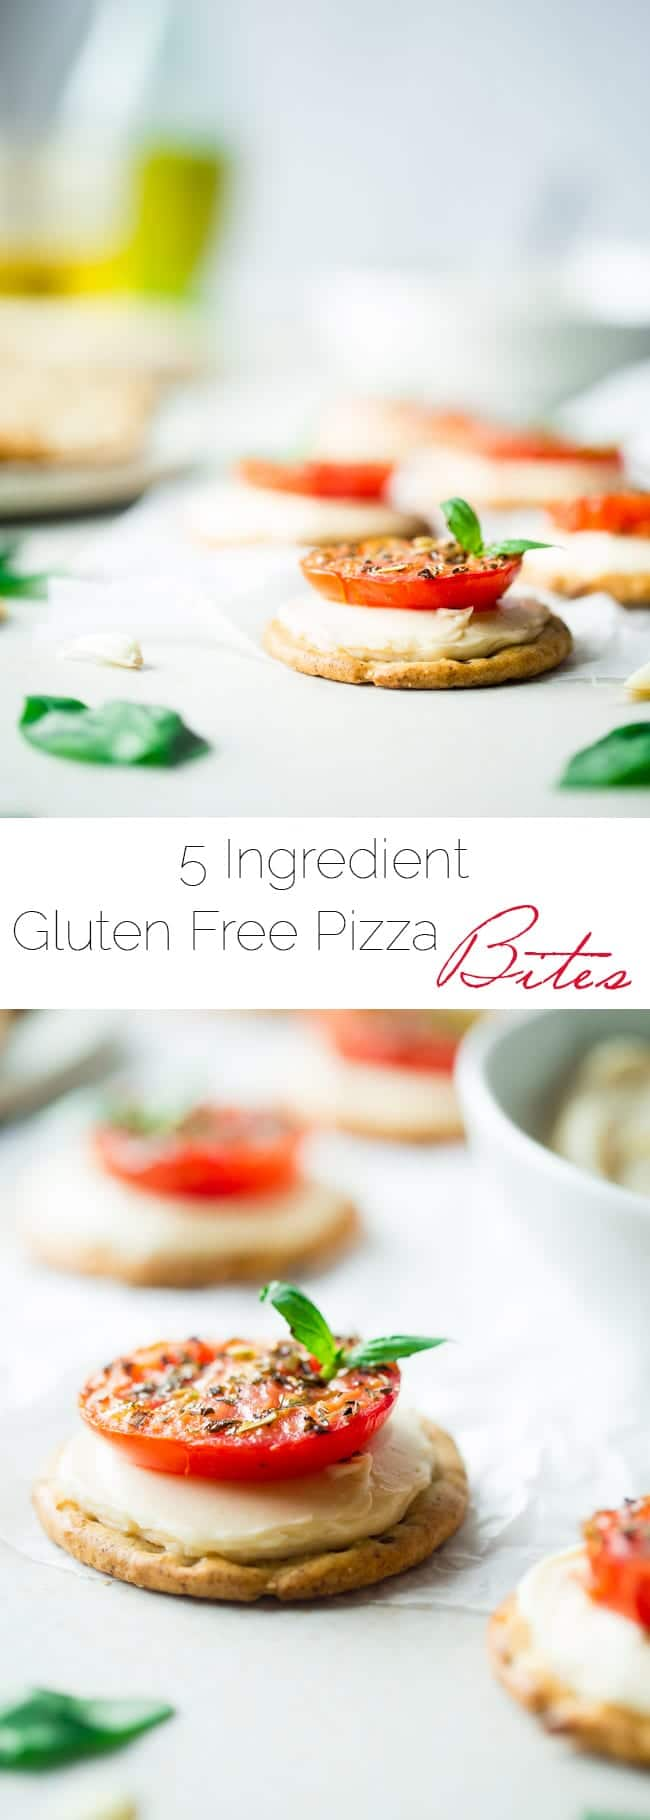 5 Ingredient Pizza Bites - These easy, healthy and gluten free pizza bites are SO simple to make and only use 5 ingredients! They're the perfect snack for after school that has all the pizza taste without all the work! | Foodfaithfitness.com | @FoodFaithFit